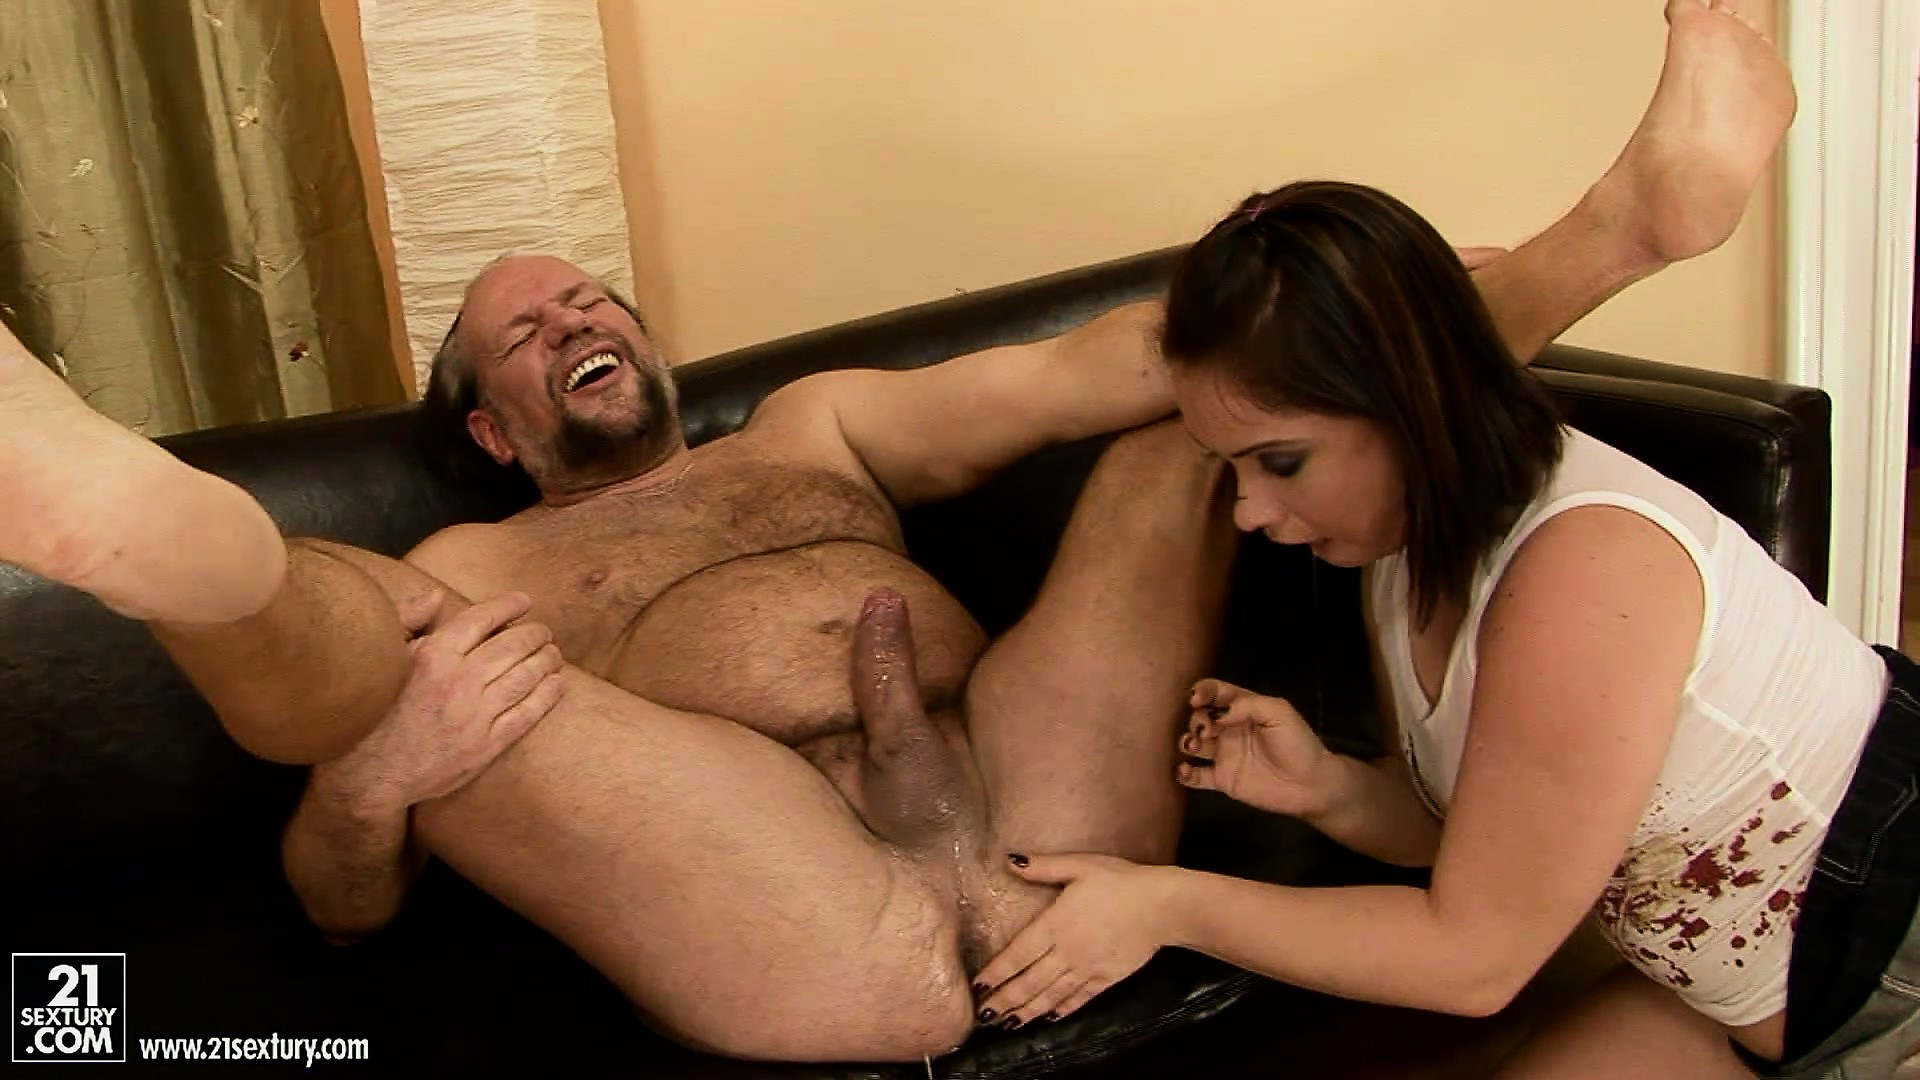 Porn Tube of Olga, A Sexy Brunette With A Sublime Ass And A Tight Cunt, Licks An Old Man's Ass